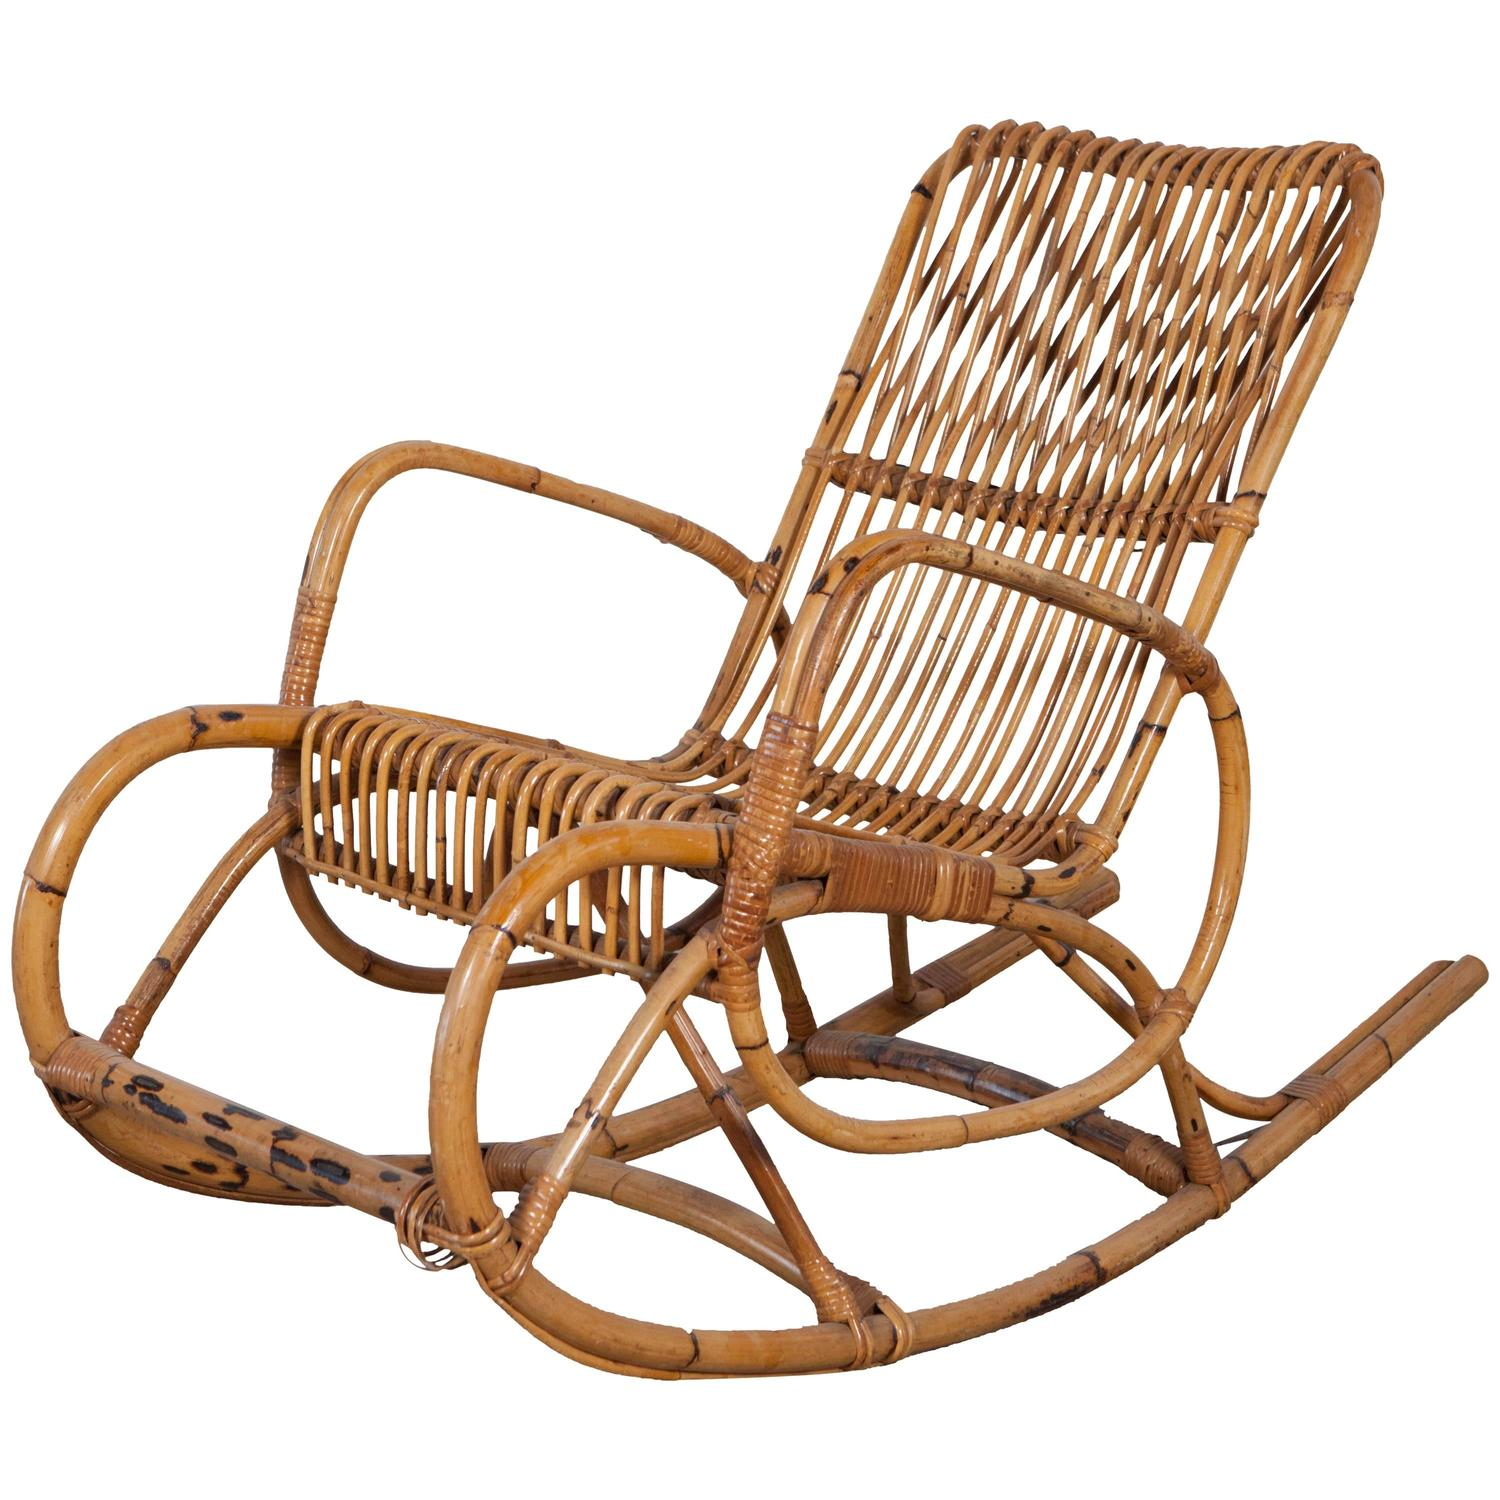 Vintage Italian Bamboo Rocking Chair with Square Arms For Sale at